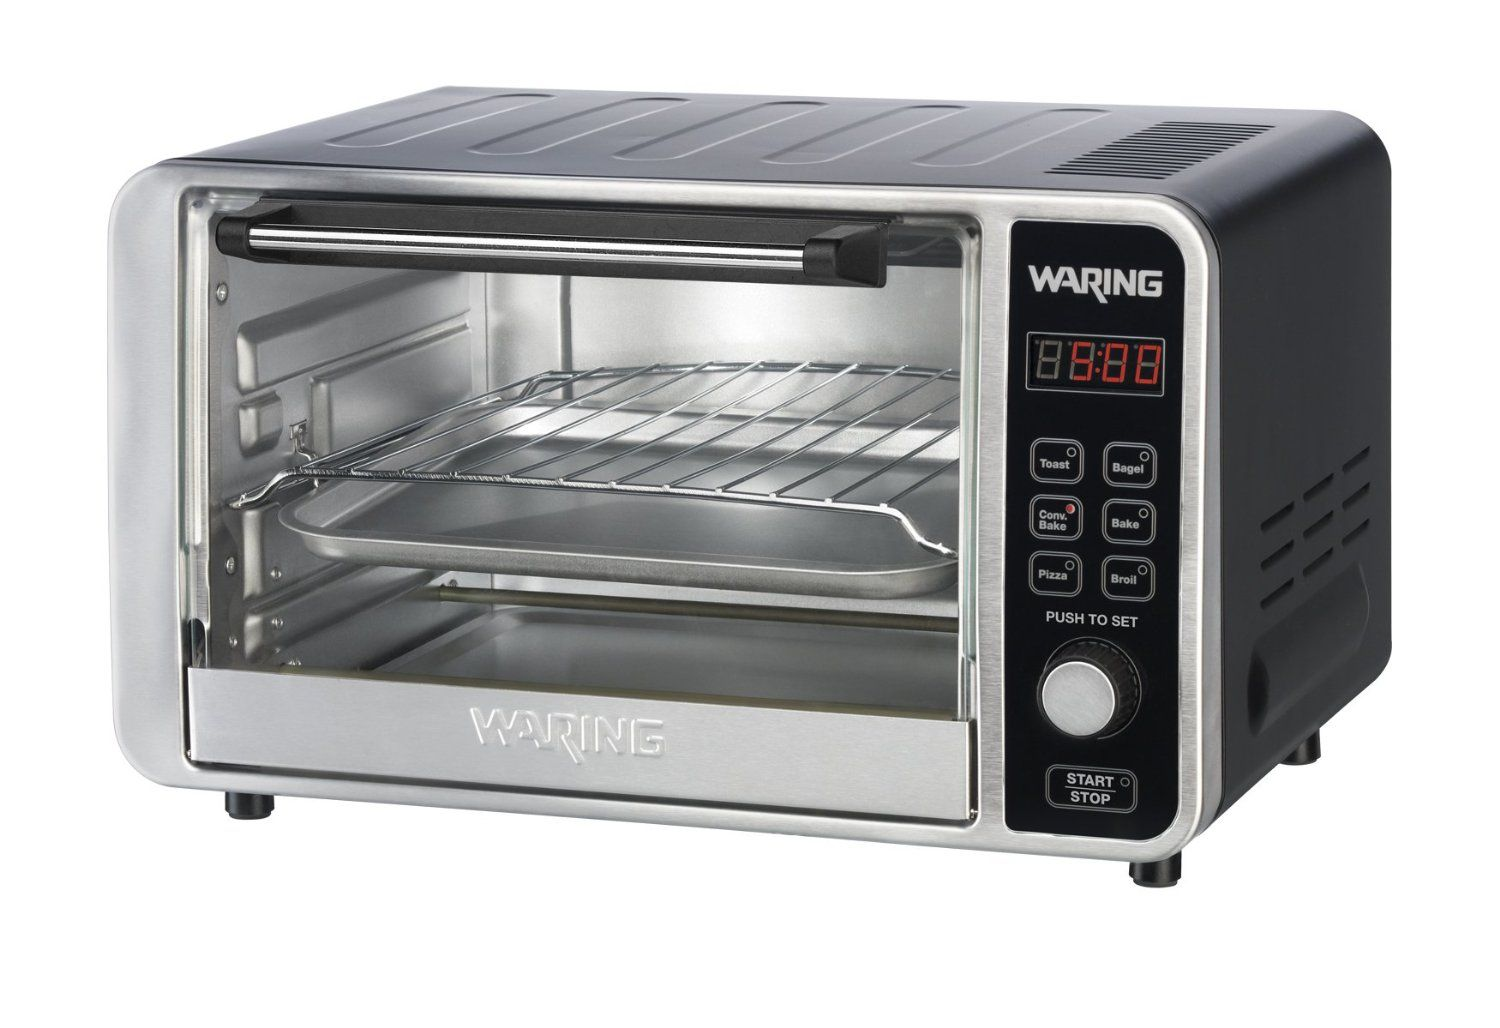 Waring Pro Tco650 Toaster Oven Reviews Convection Oven